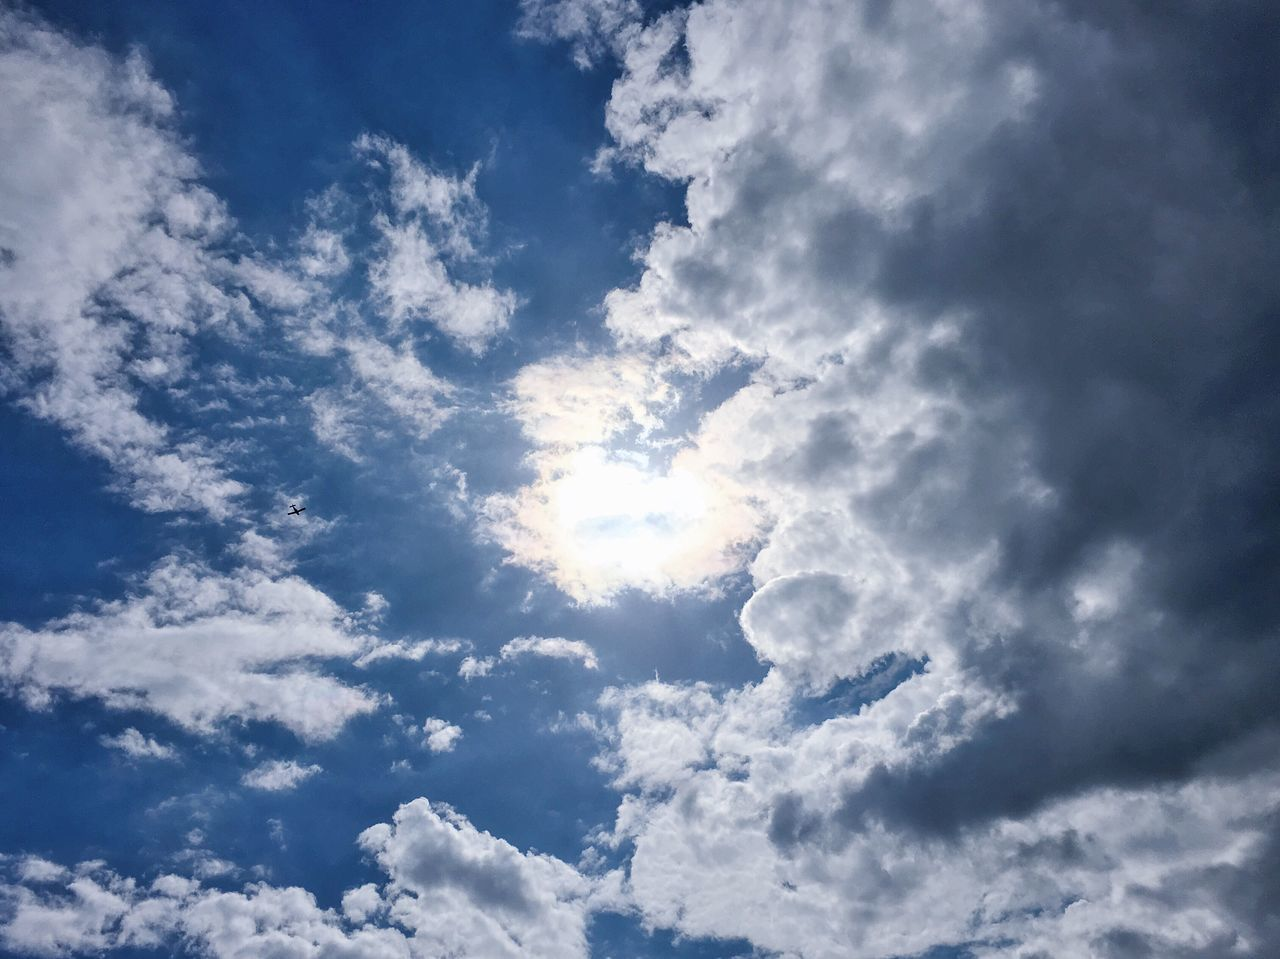 Cloud - Sky Sky Nature Low Angle View Beauty In Nature Tranquility Blue Fluffy No People Scenics Sunlight Day Backgrounds Heaven Cumulus Sky Only Outdoors